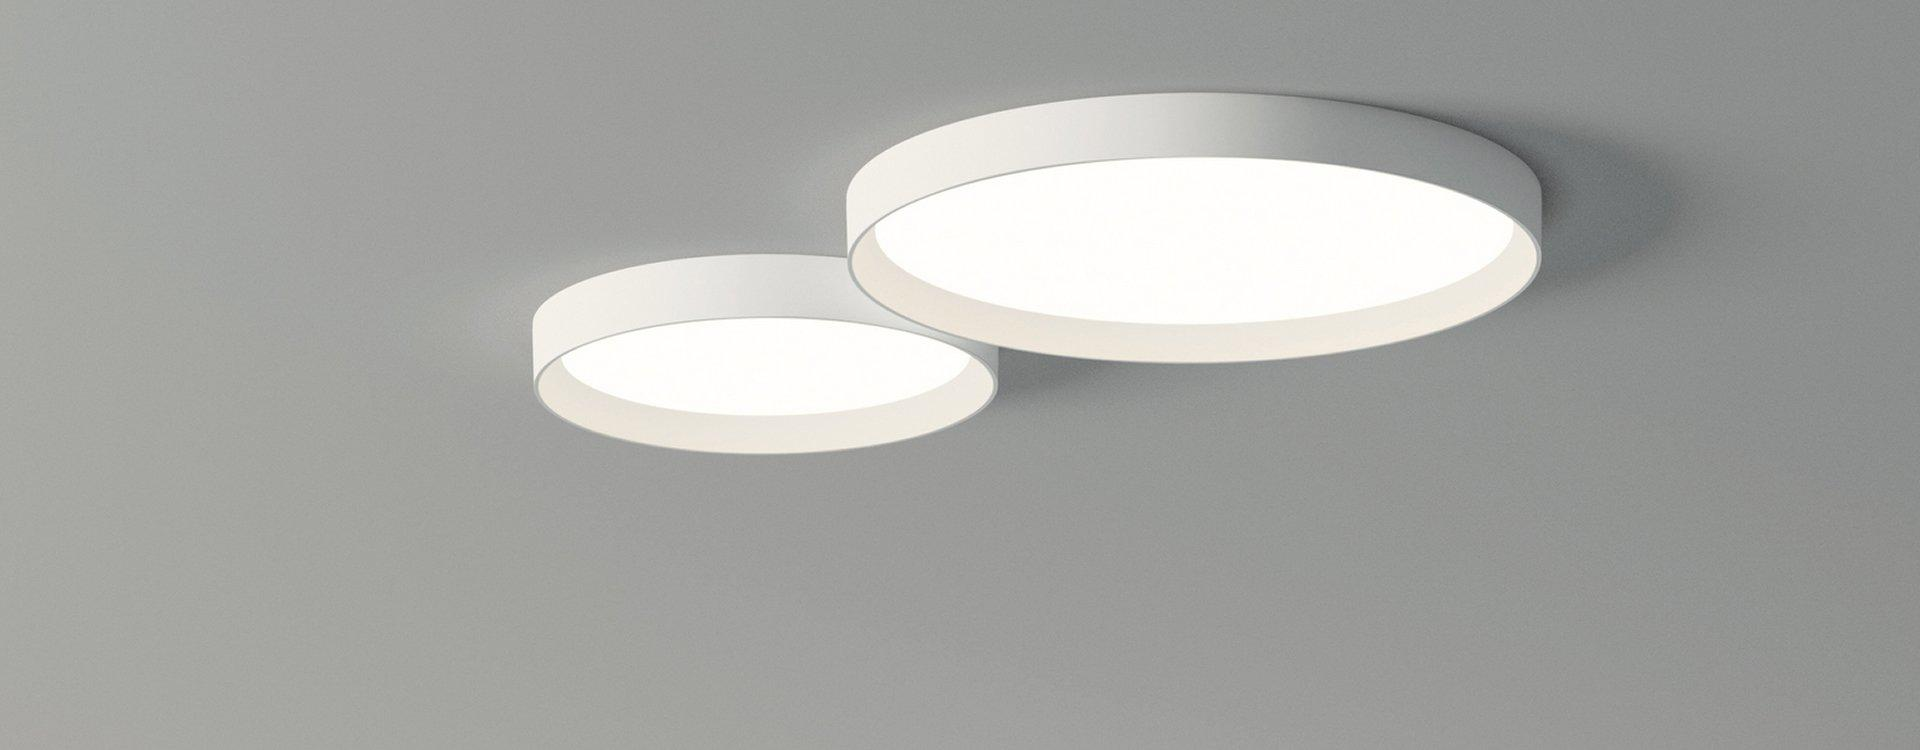 Up ceiling lamp pequeño 1 x plate LED 30w - Lacquered white matt